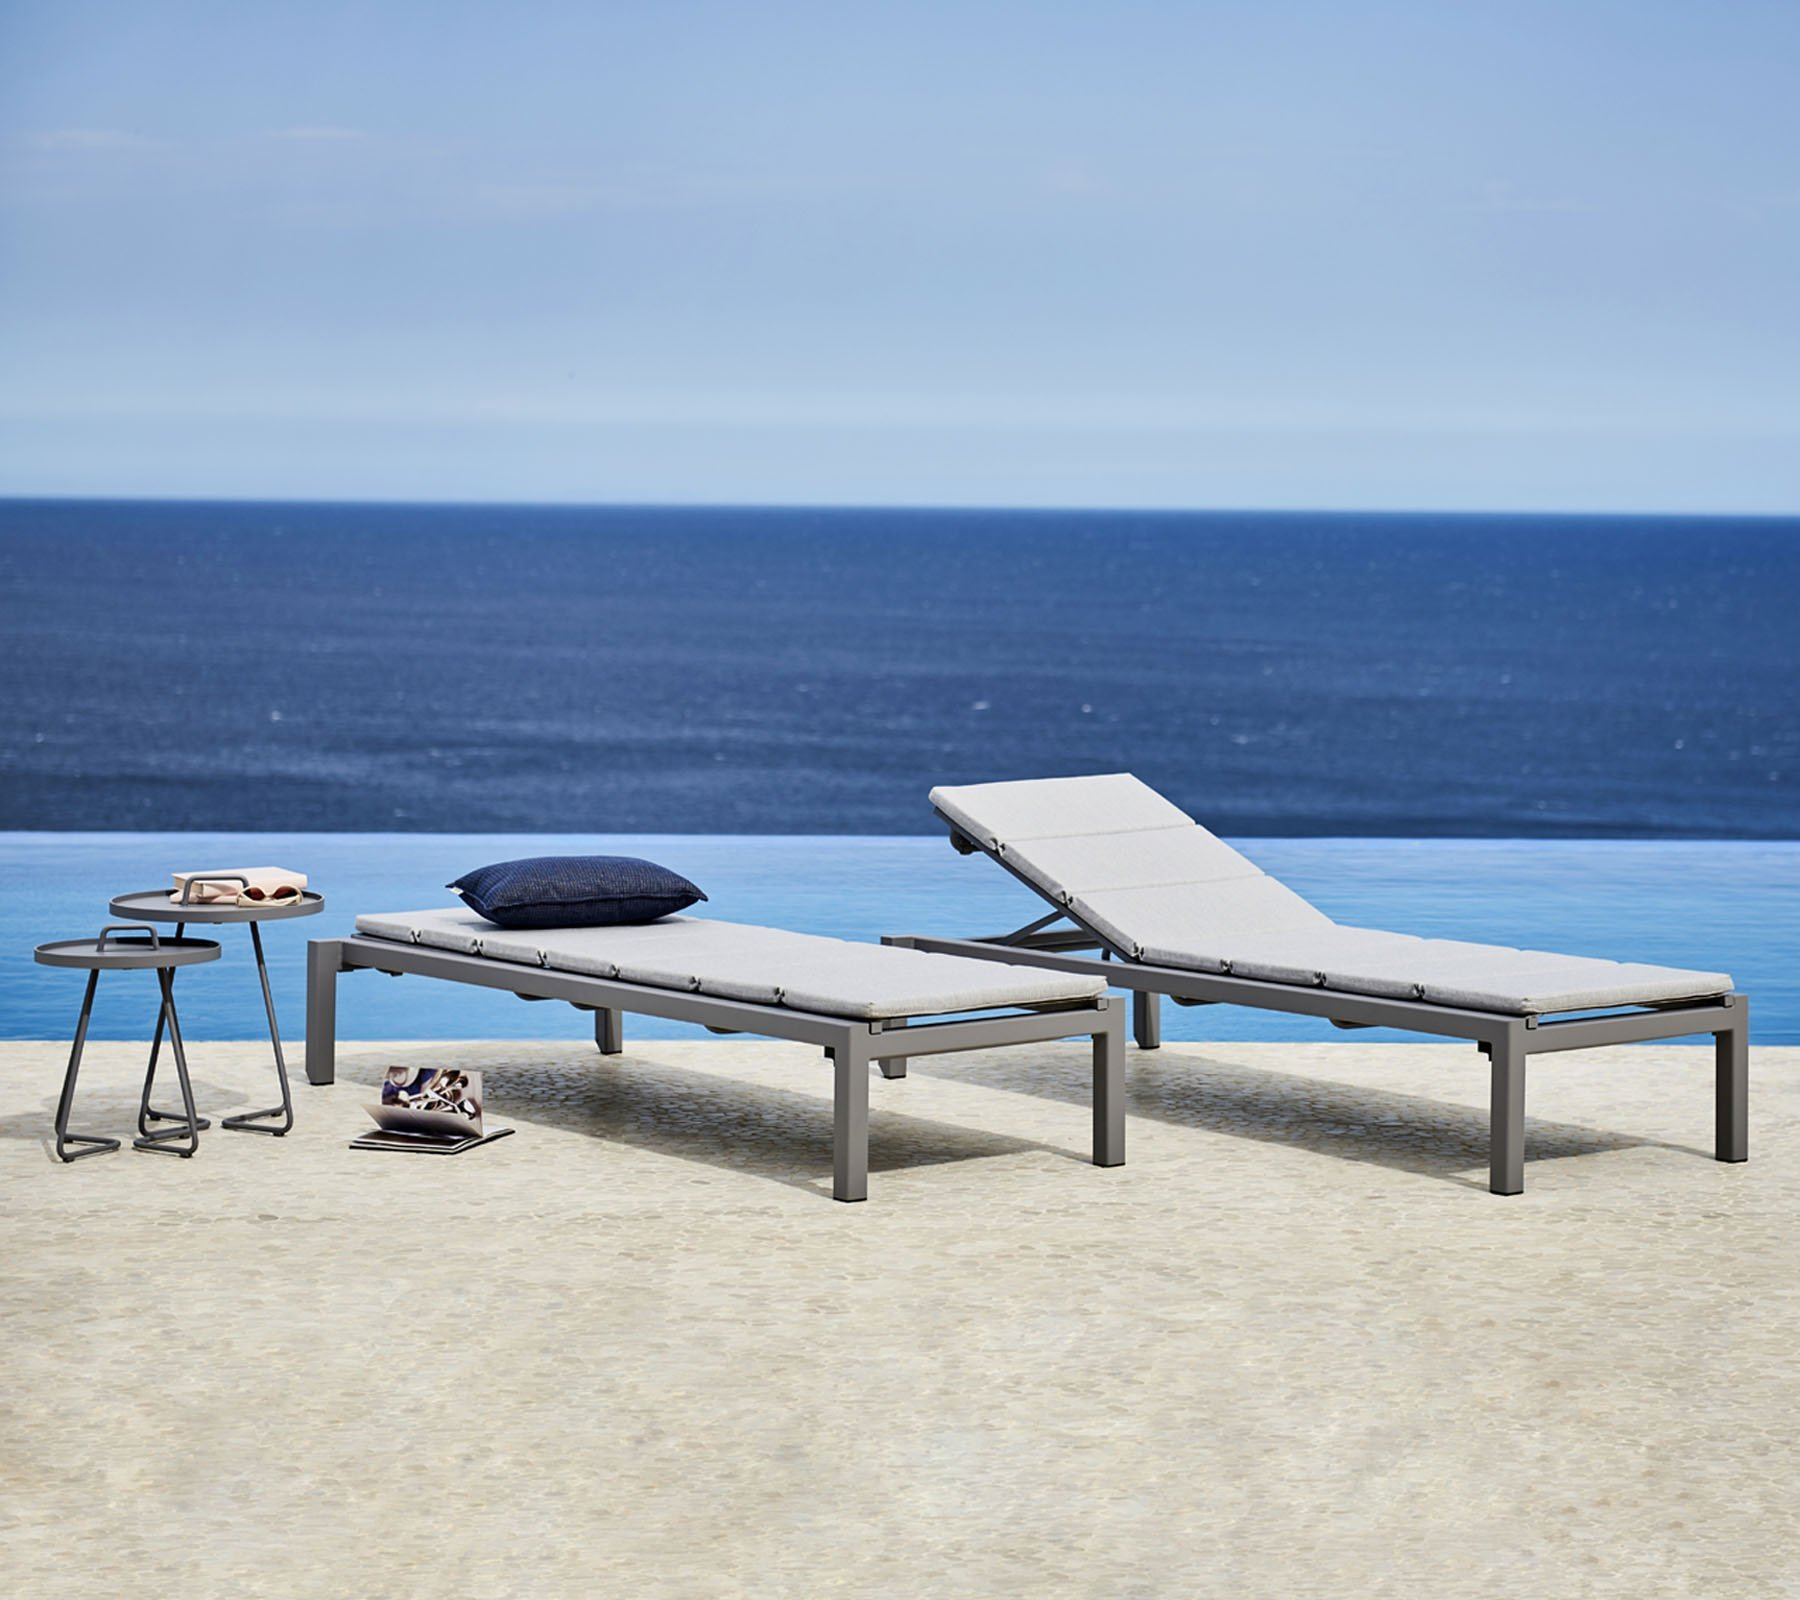 Relax Sunbeds from Cane-line, designed by Cane-line Design Team